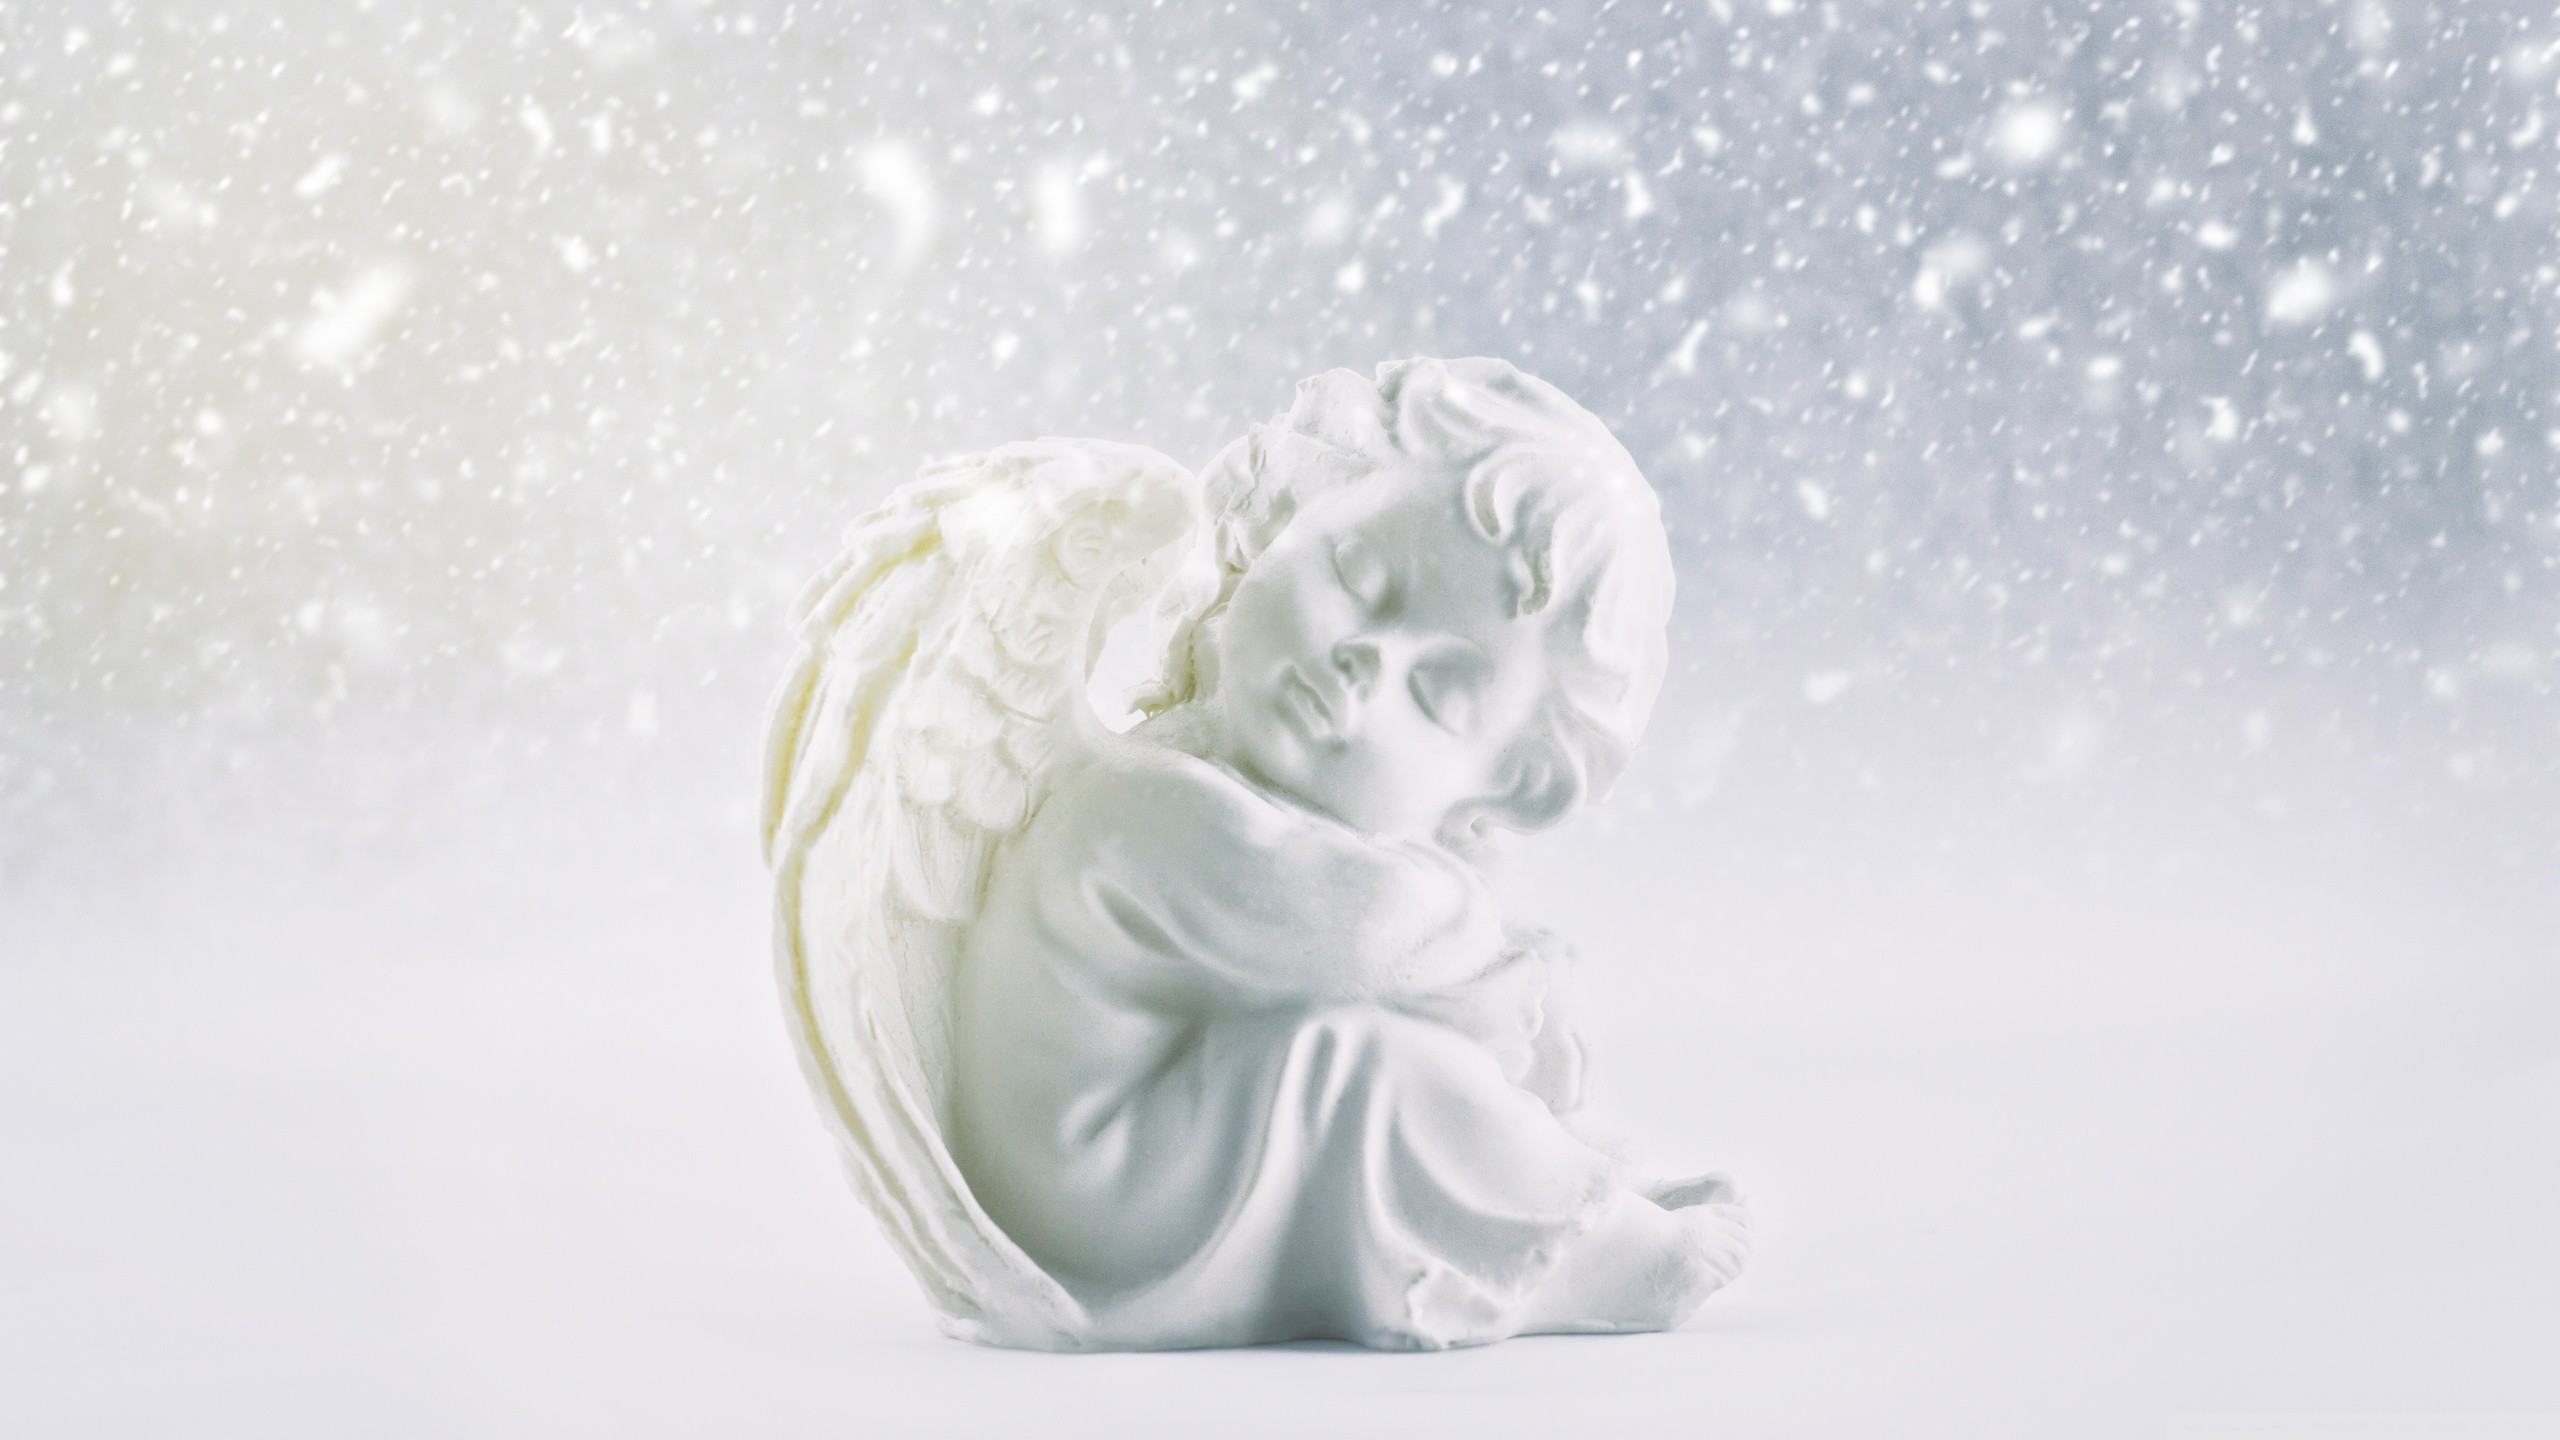 Cute Fairy Wallpaper Download Wallpaper Baby Angels 50 Images